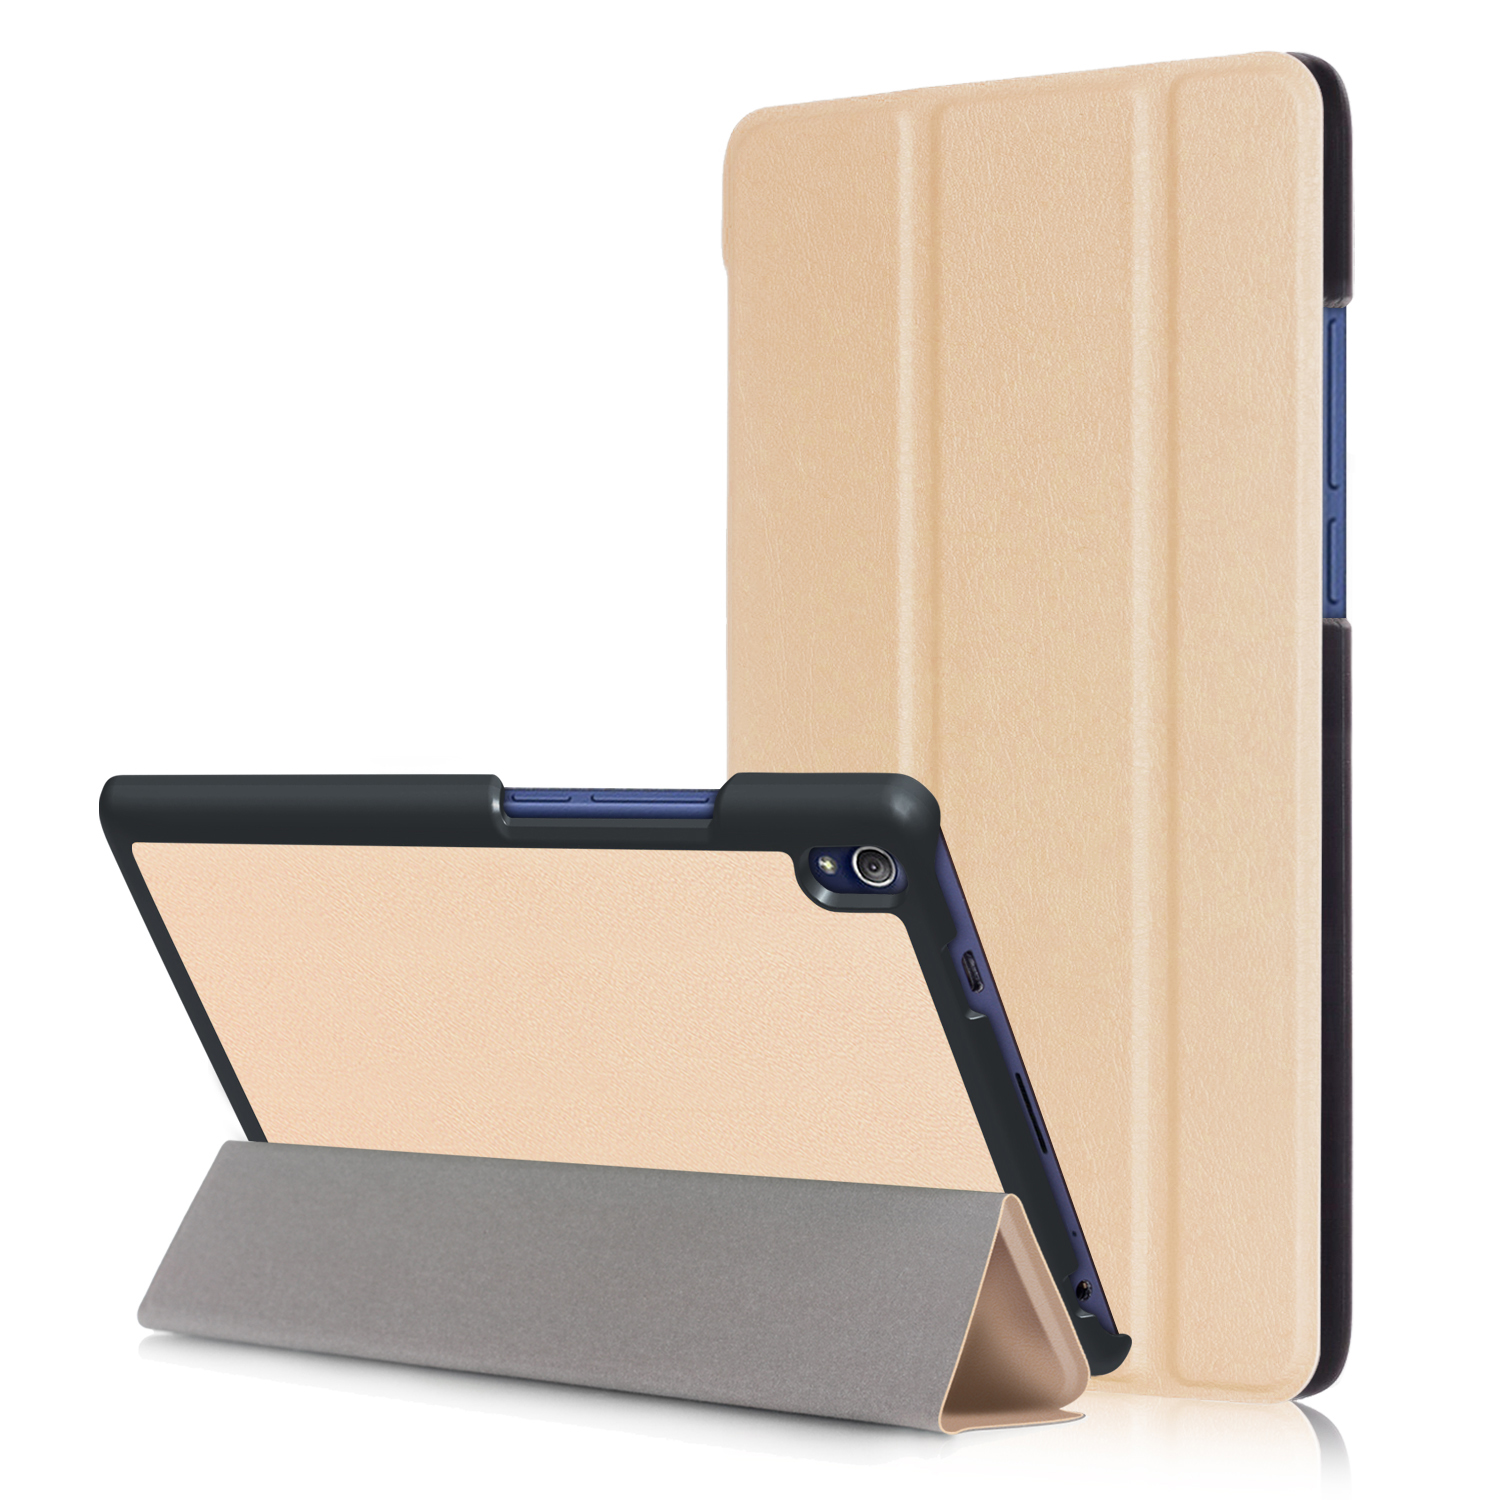 Case Cover for 2016 Lenovo Tab 3 8 Plus P8 TB-8703F TB-8703N 8 inch Tablet Folio stand PU leather cover case+free gift ultra thin smart pu leather cover case stand cover case for 2015 lenovo yoga tab 3 8 850f tablet free film free stylus